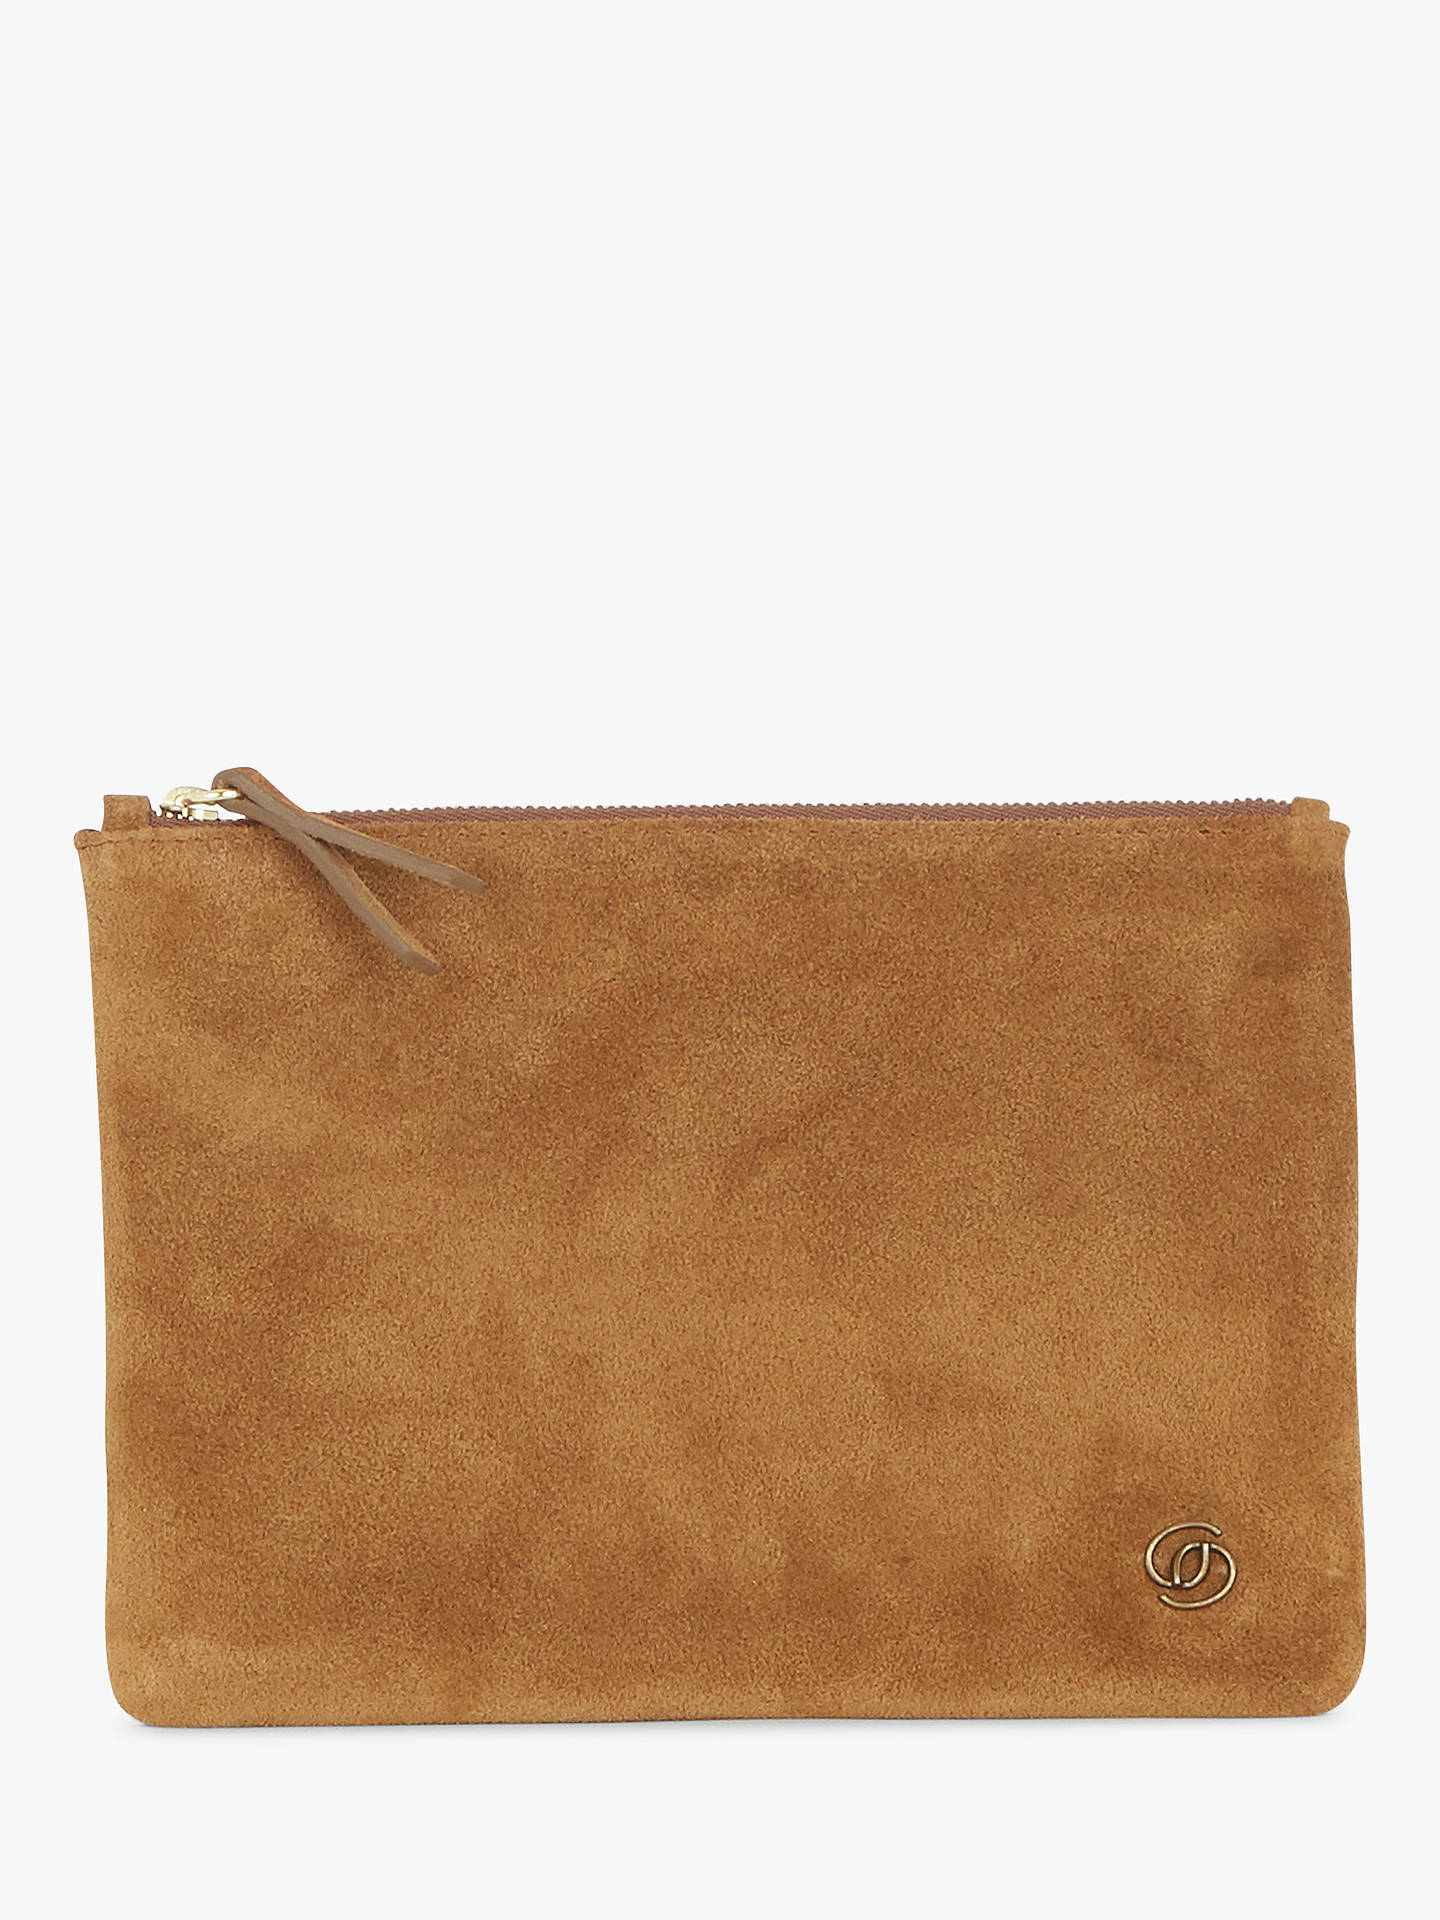 bad790254a477 Buy Gerard Darel Pocket Leather Pouch